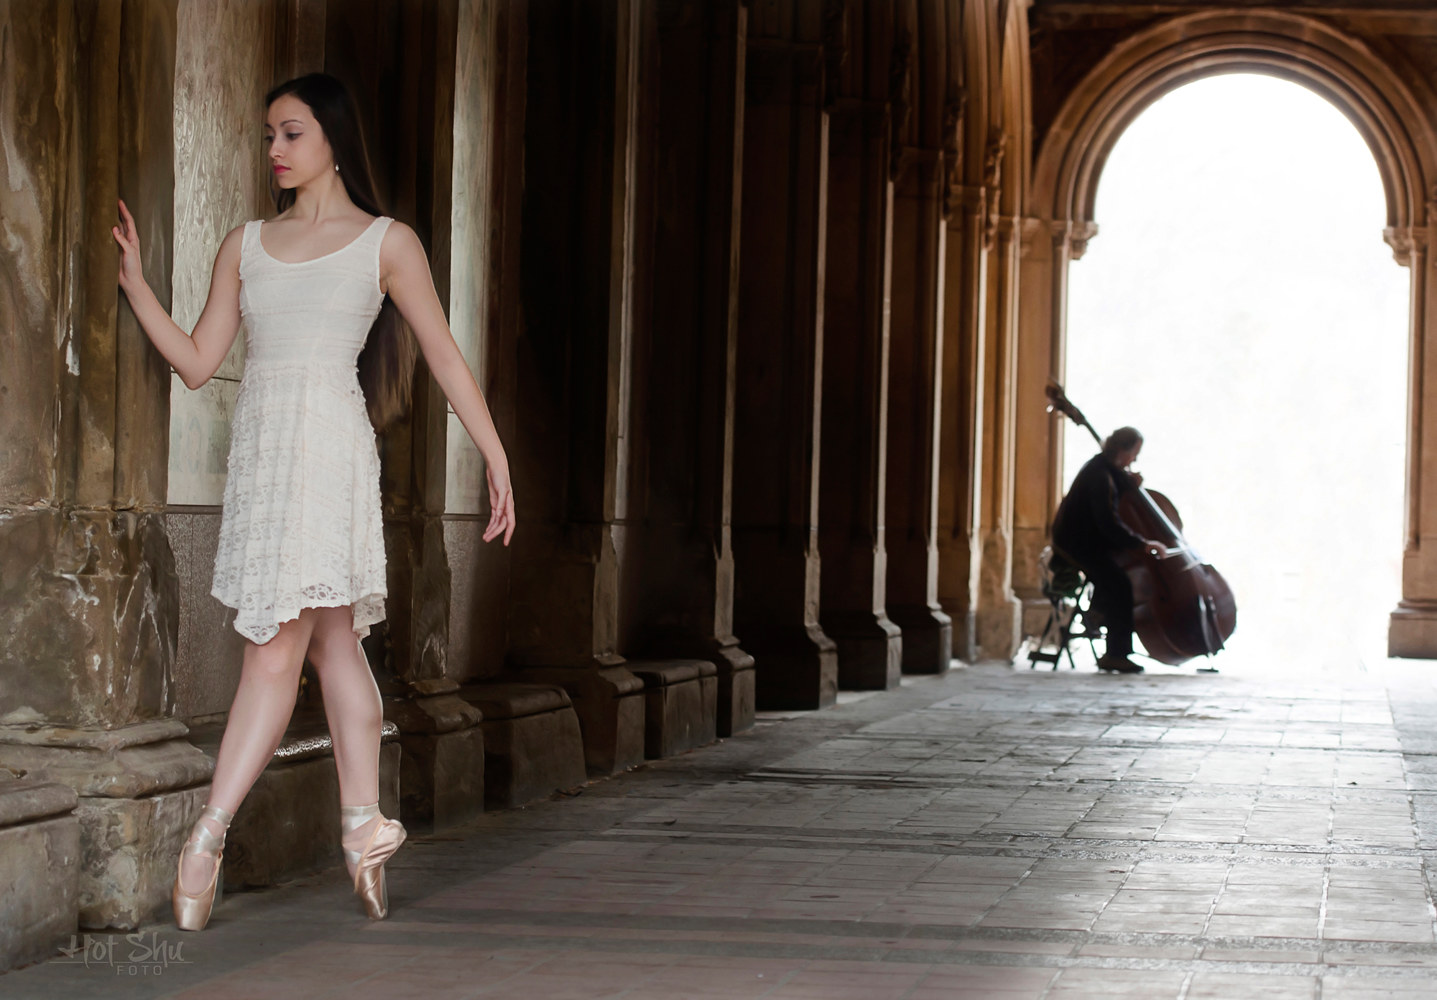 Sarah - ballerina Dancing with the Philadelphia Ballet by Doug Berry